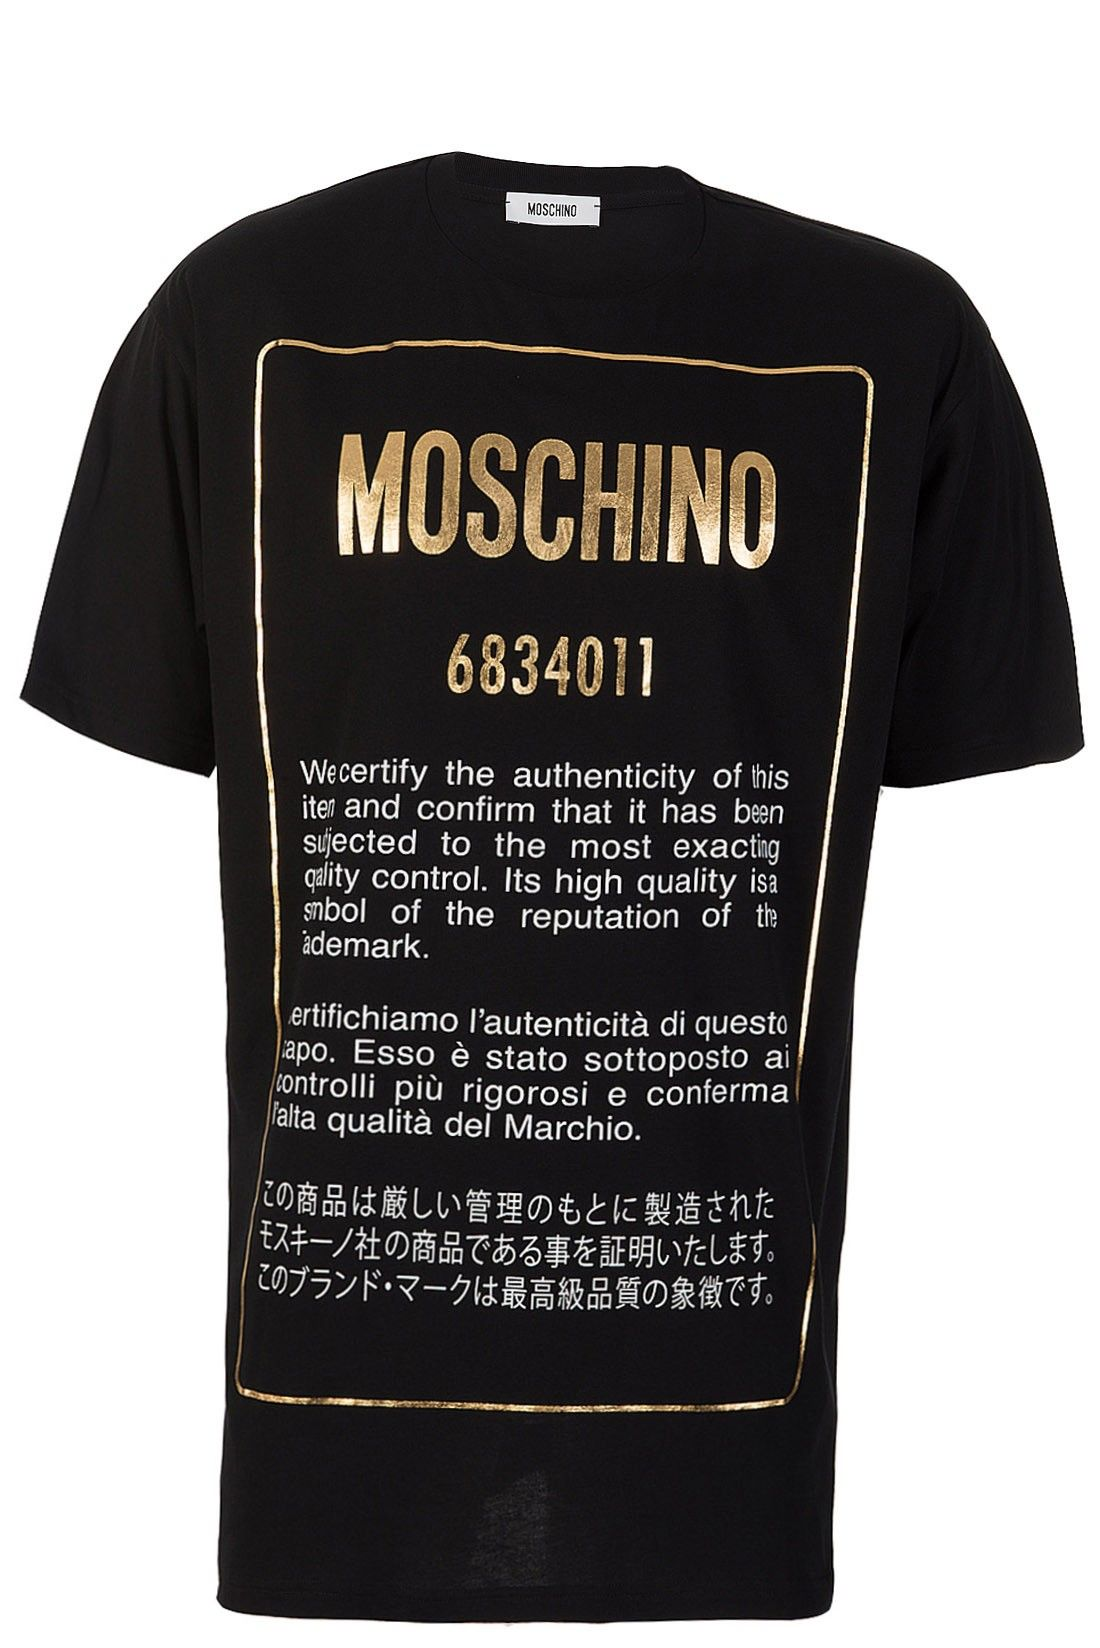 Black t shirt with gold design - Moschino Authenticity T Shirt Black Gold Spring Summer 2014 Men S Designer Clothing